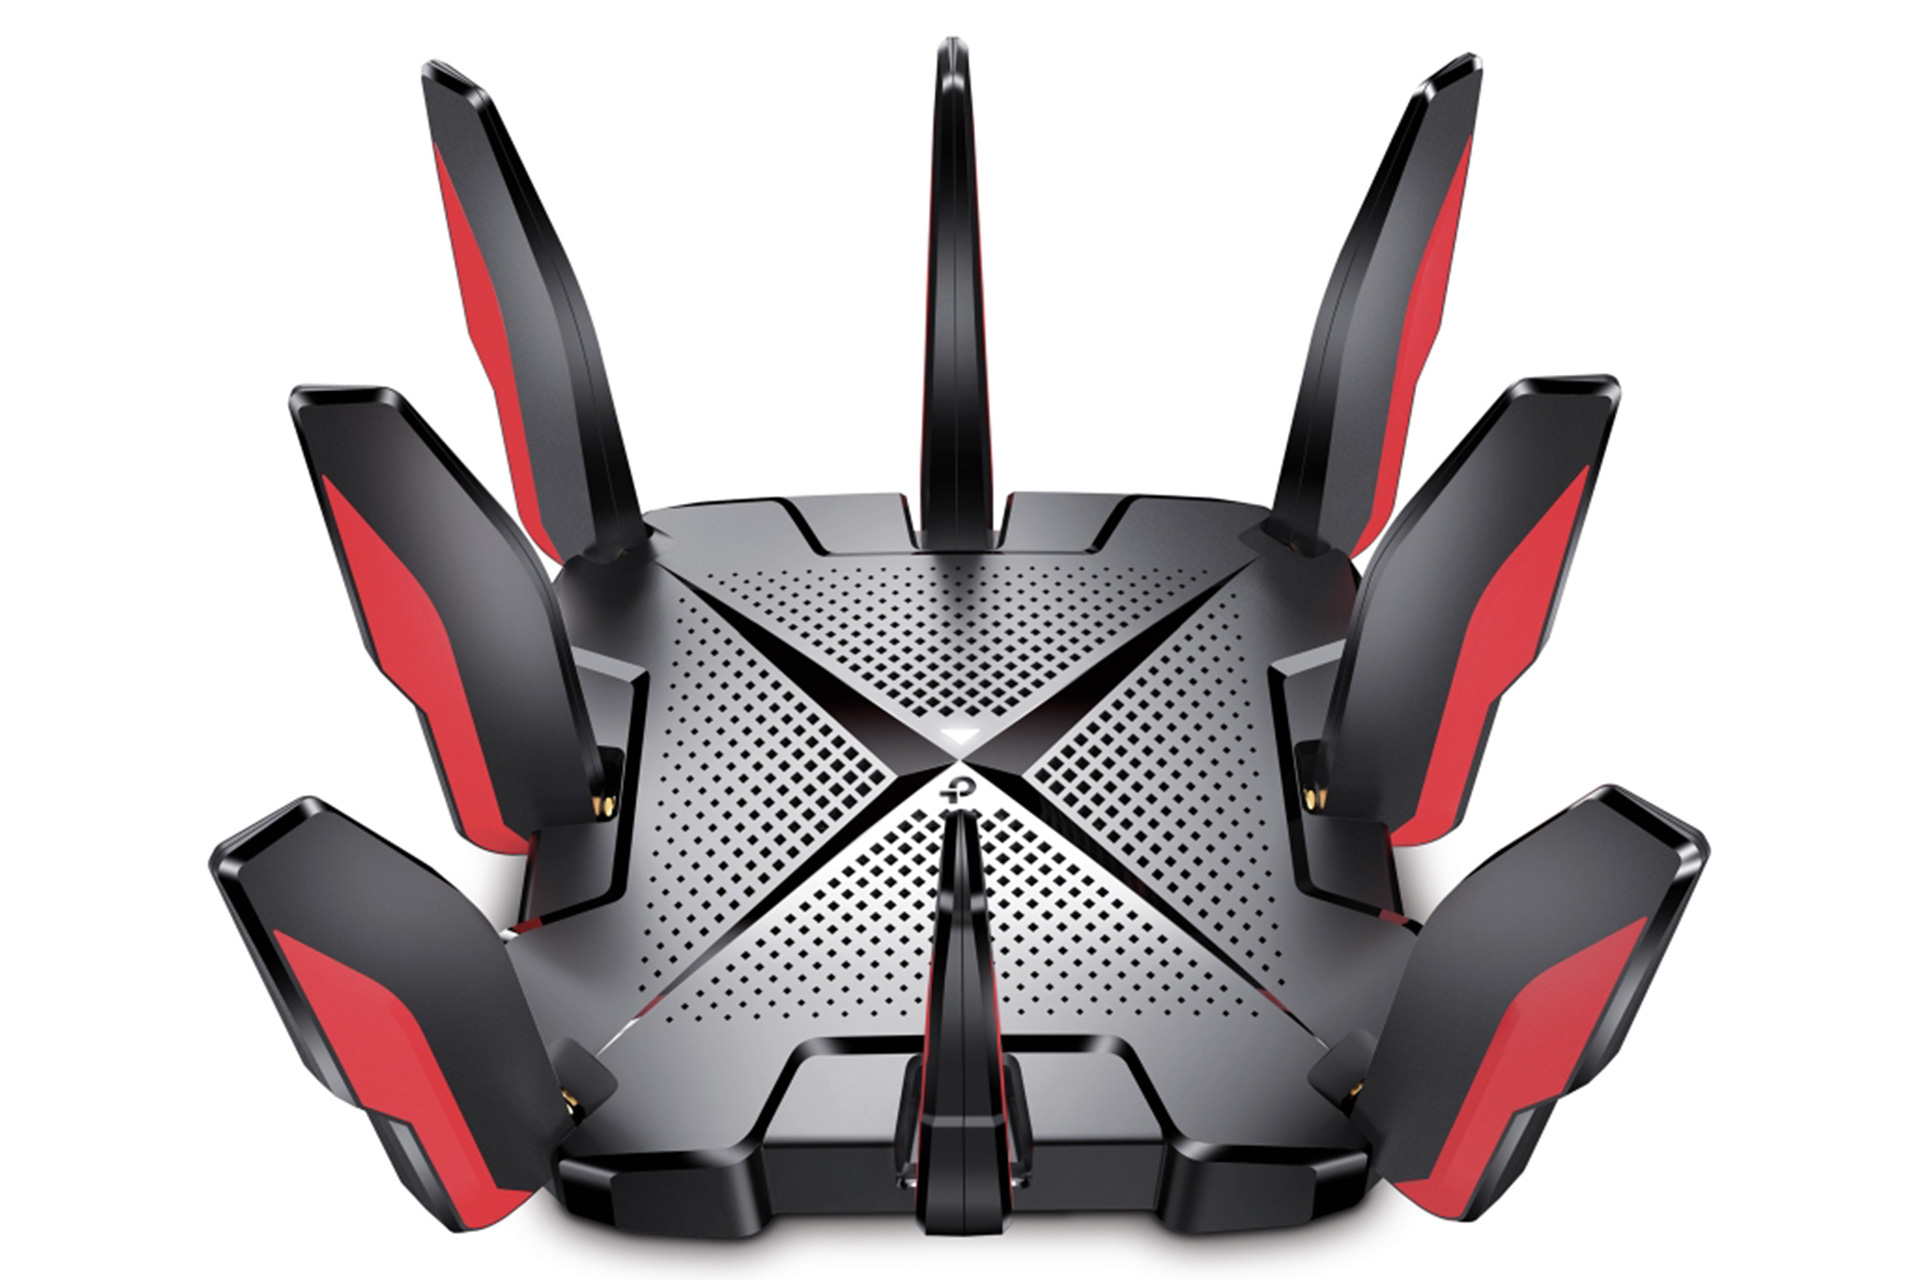 TP-Link's latest WiFi 6 router includes a dedicated band for gaming